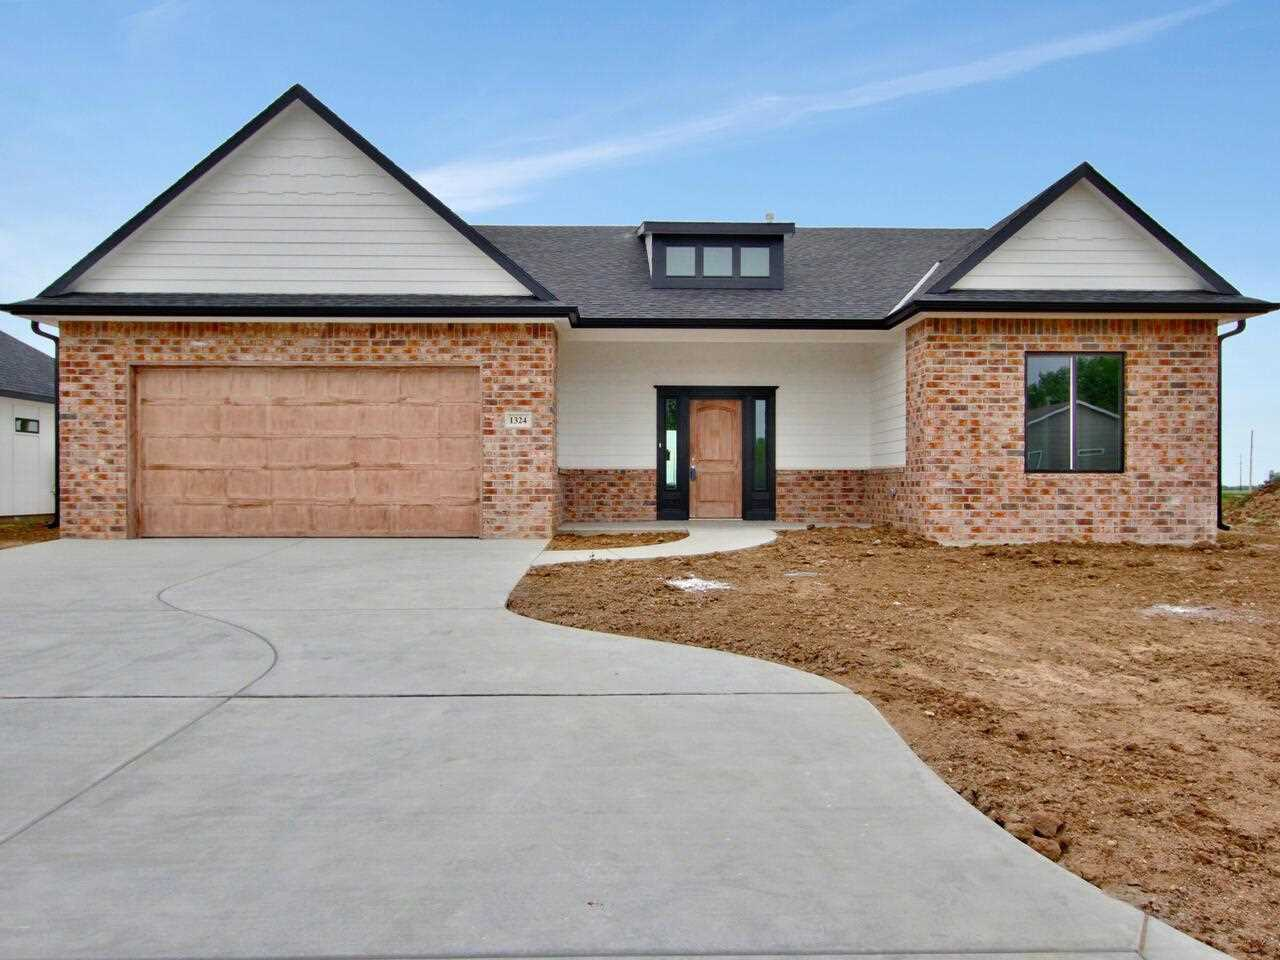 Beautiful new constructed home in Garden Plain Kansas. *NO SPECIALS* Slab floor plan with a large wa